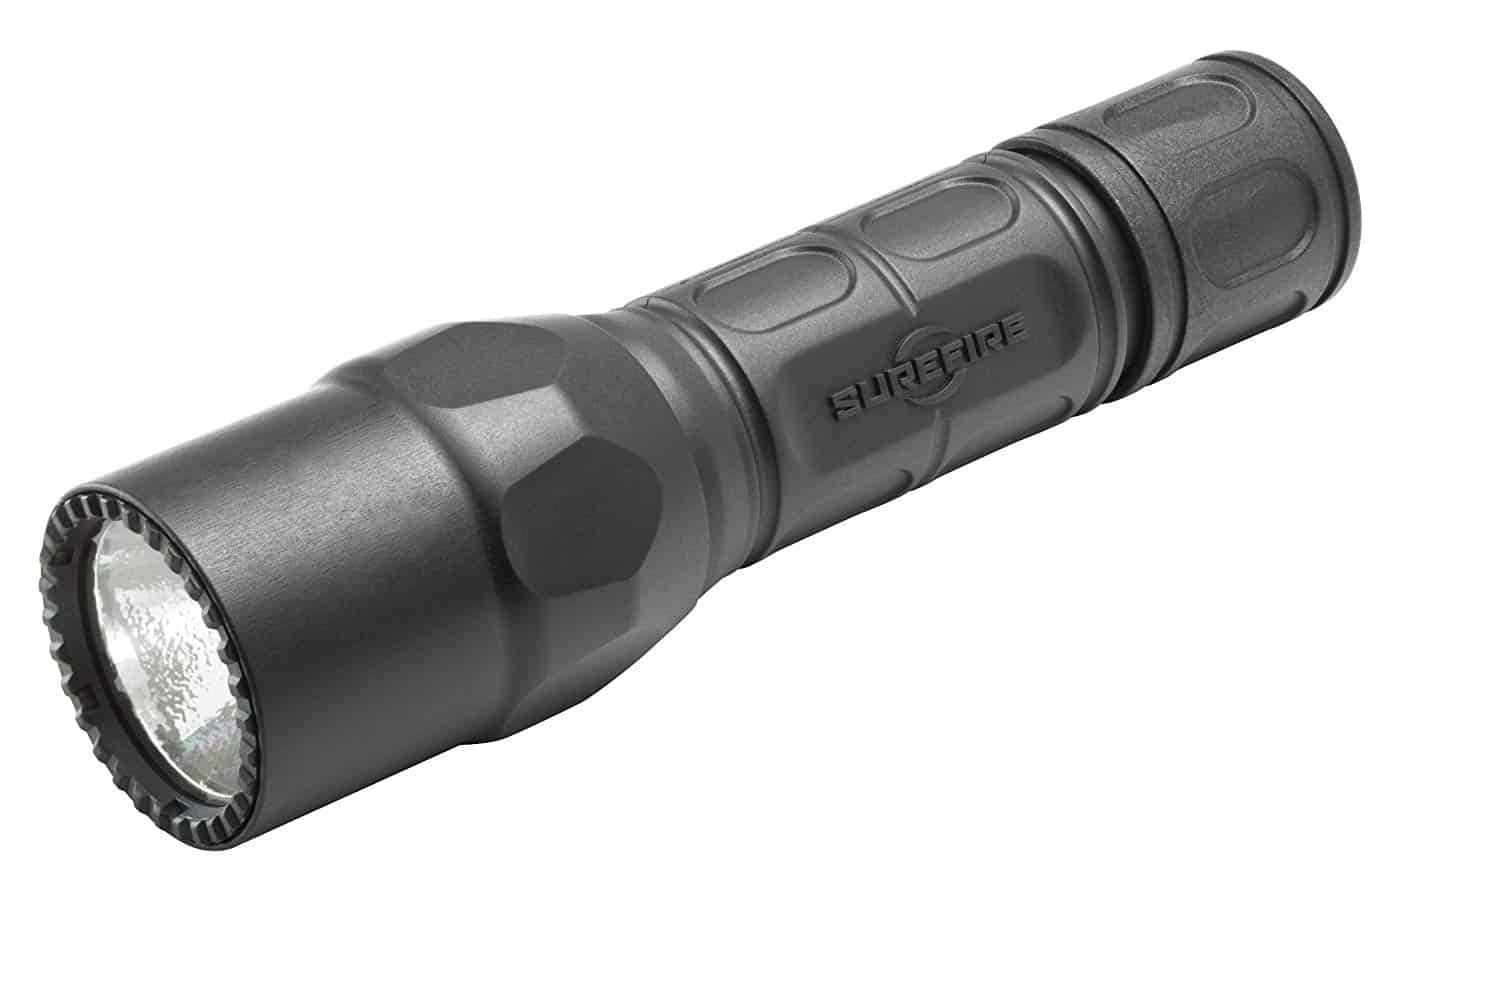 SureFire G2X Series LED Flashlights with Tough Nitrolon Body